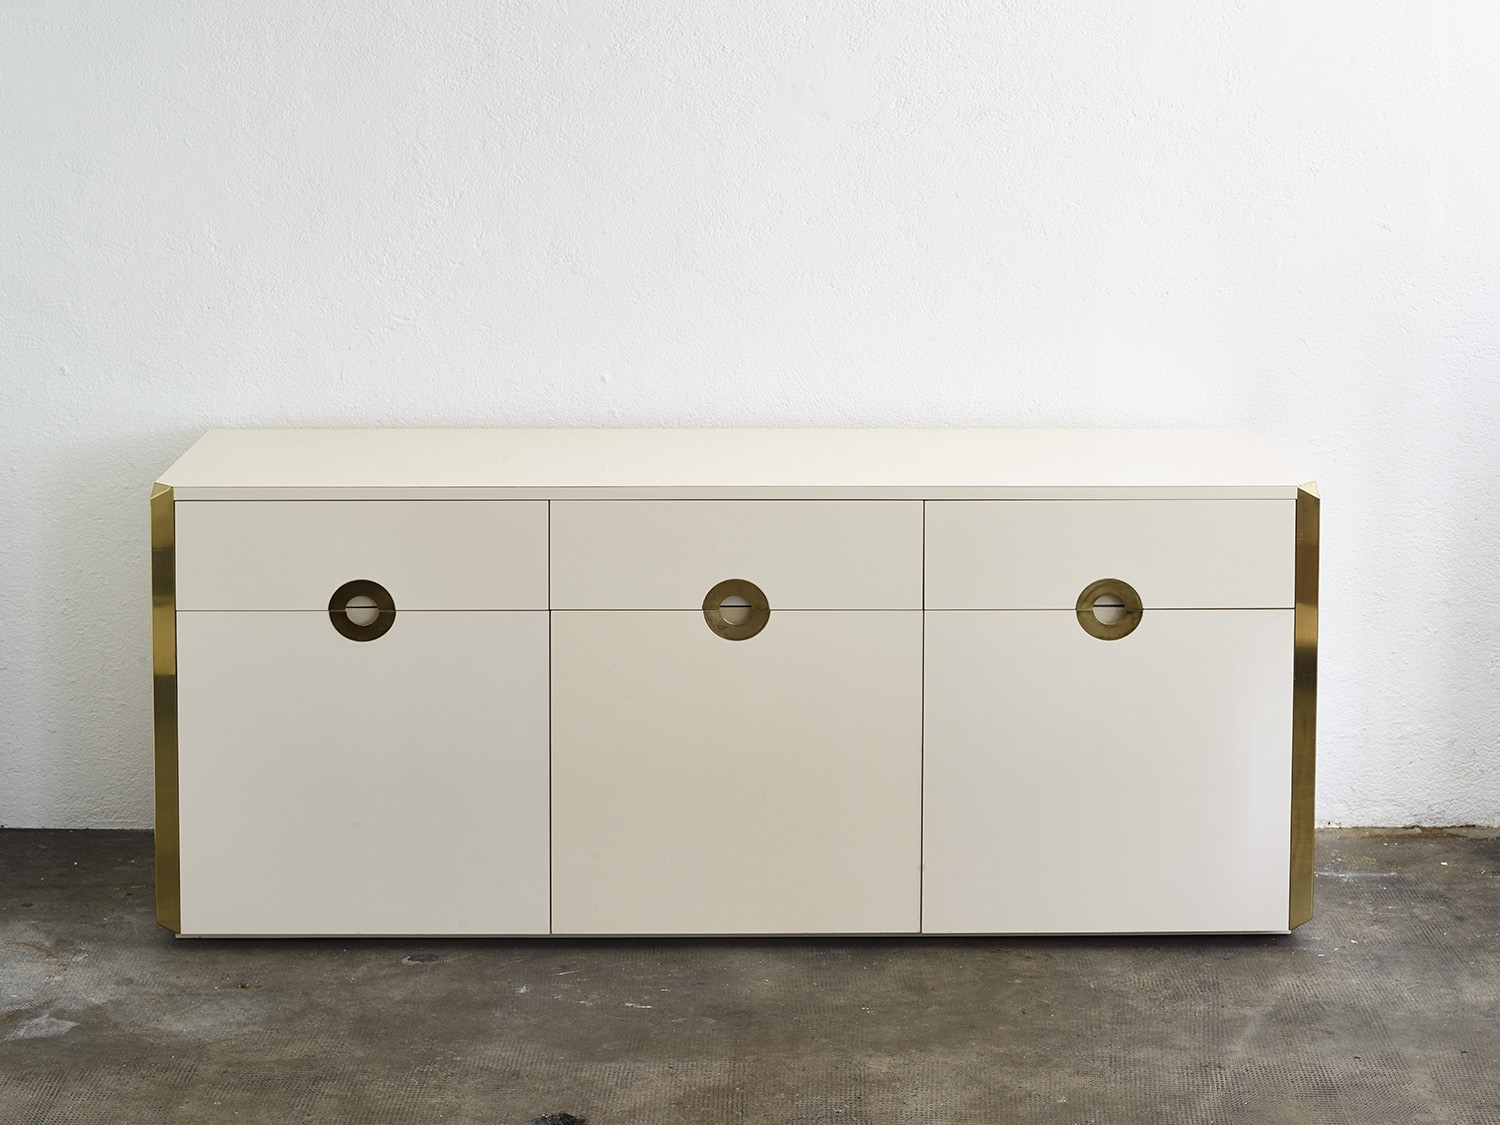 sideboard-alveo-de-willy-rizzo-ed-mario-sabot-1970-image-01